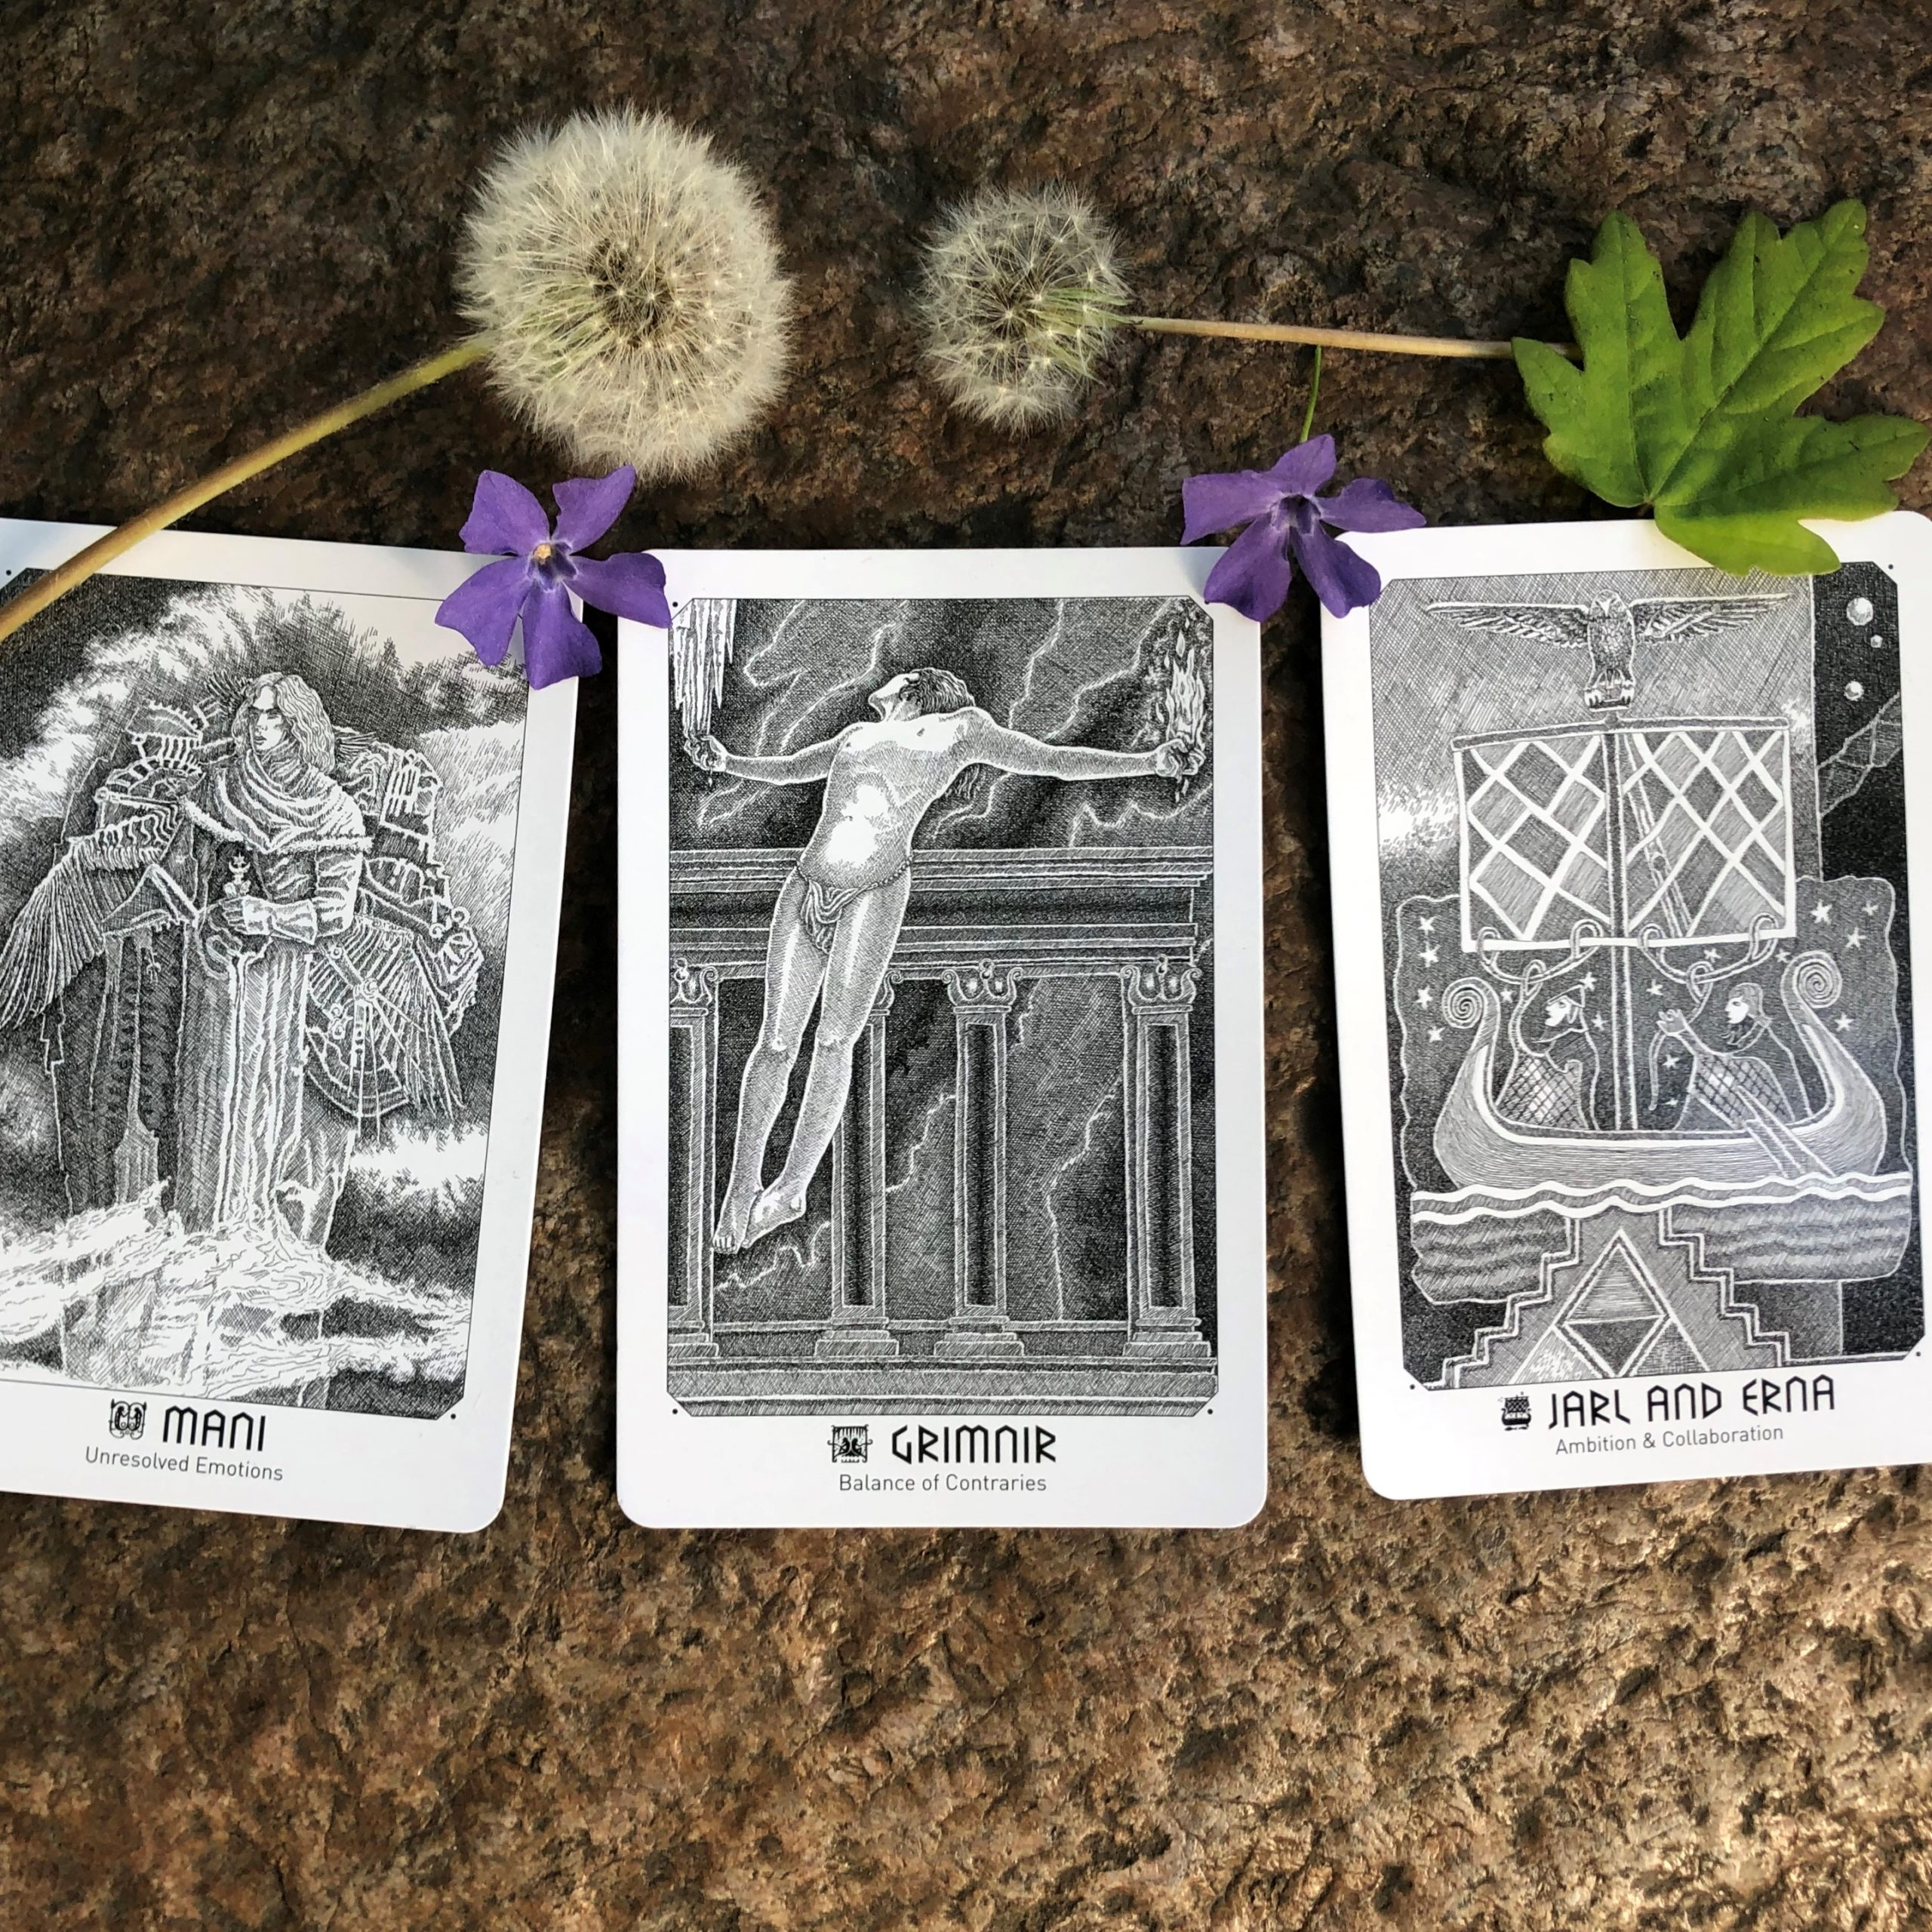 Icelandic tarot deck wins International Tarot Foundation prizes